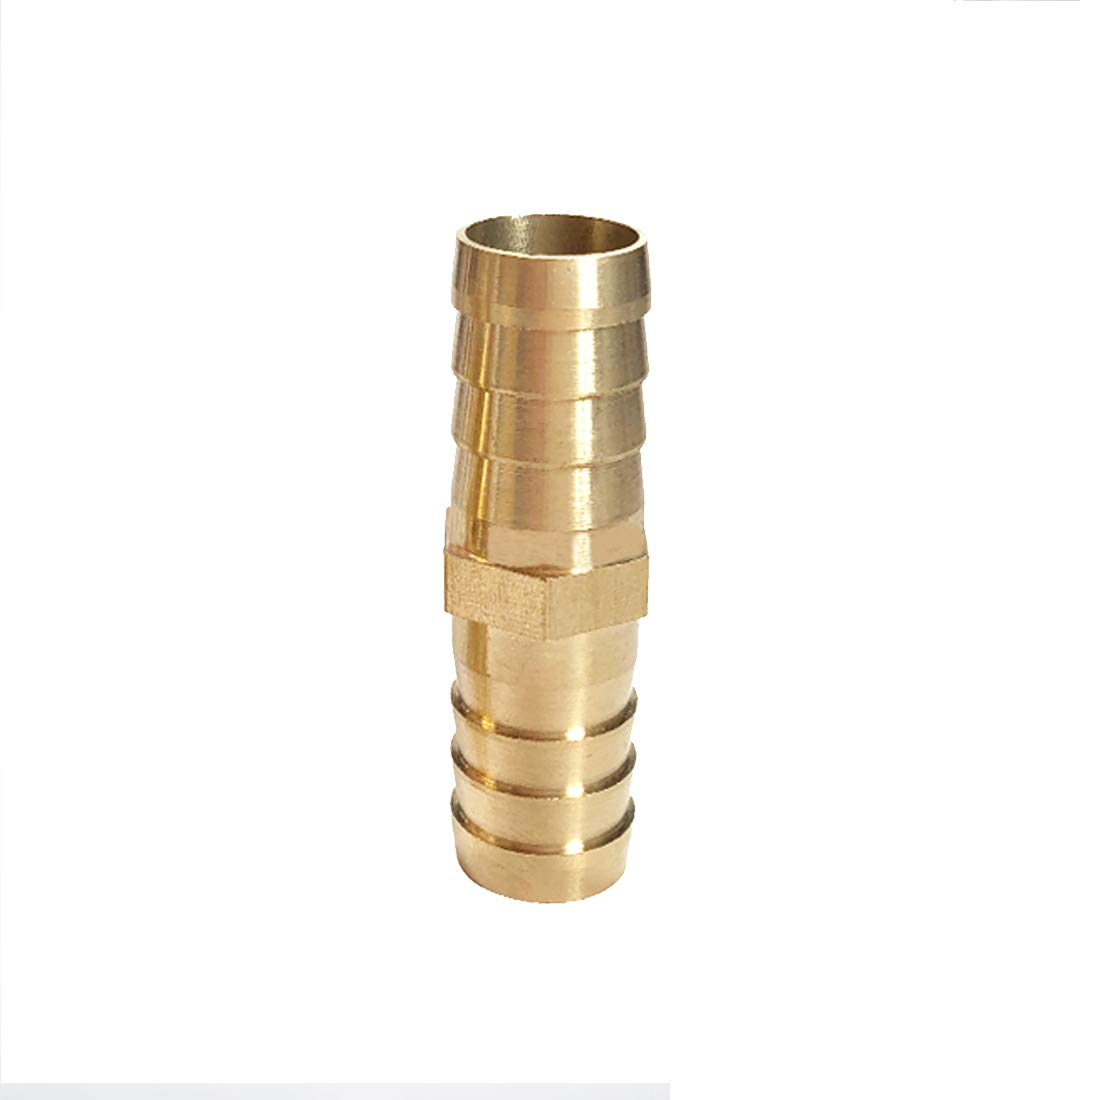 Quickun Hose Bard Fitting 1//2 x 1//2 Hose ID Brass Hex Barbed Splicer Mender Joint Adapter Union Fitting